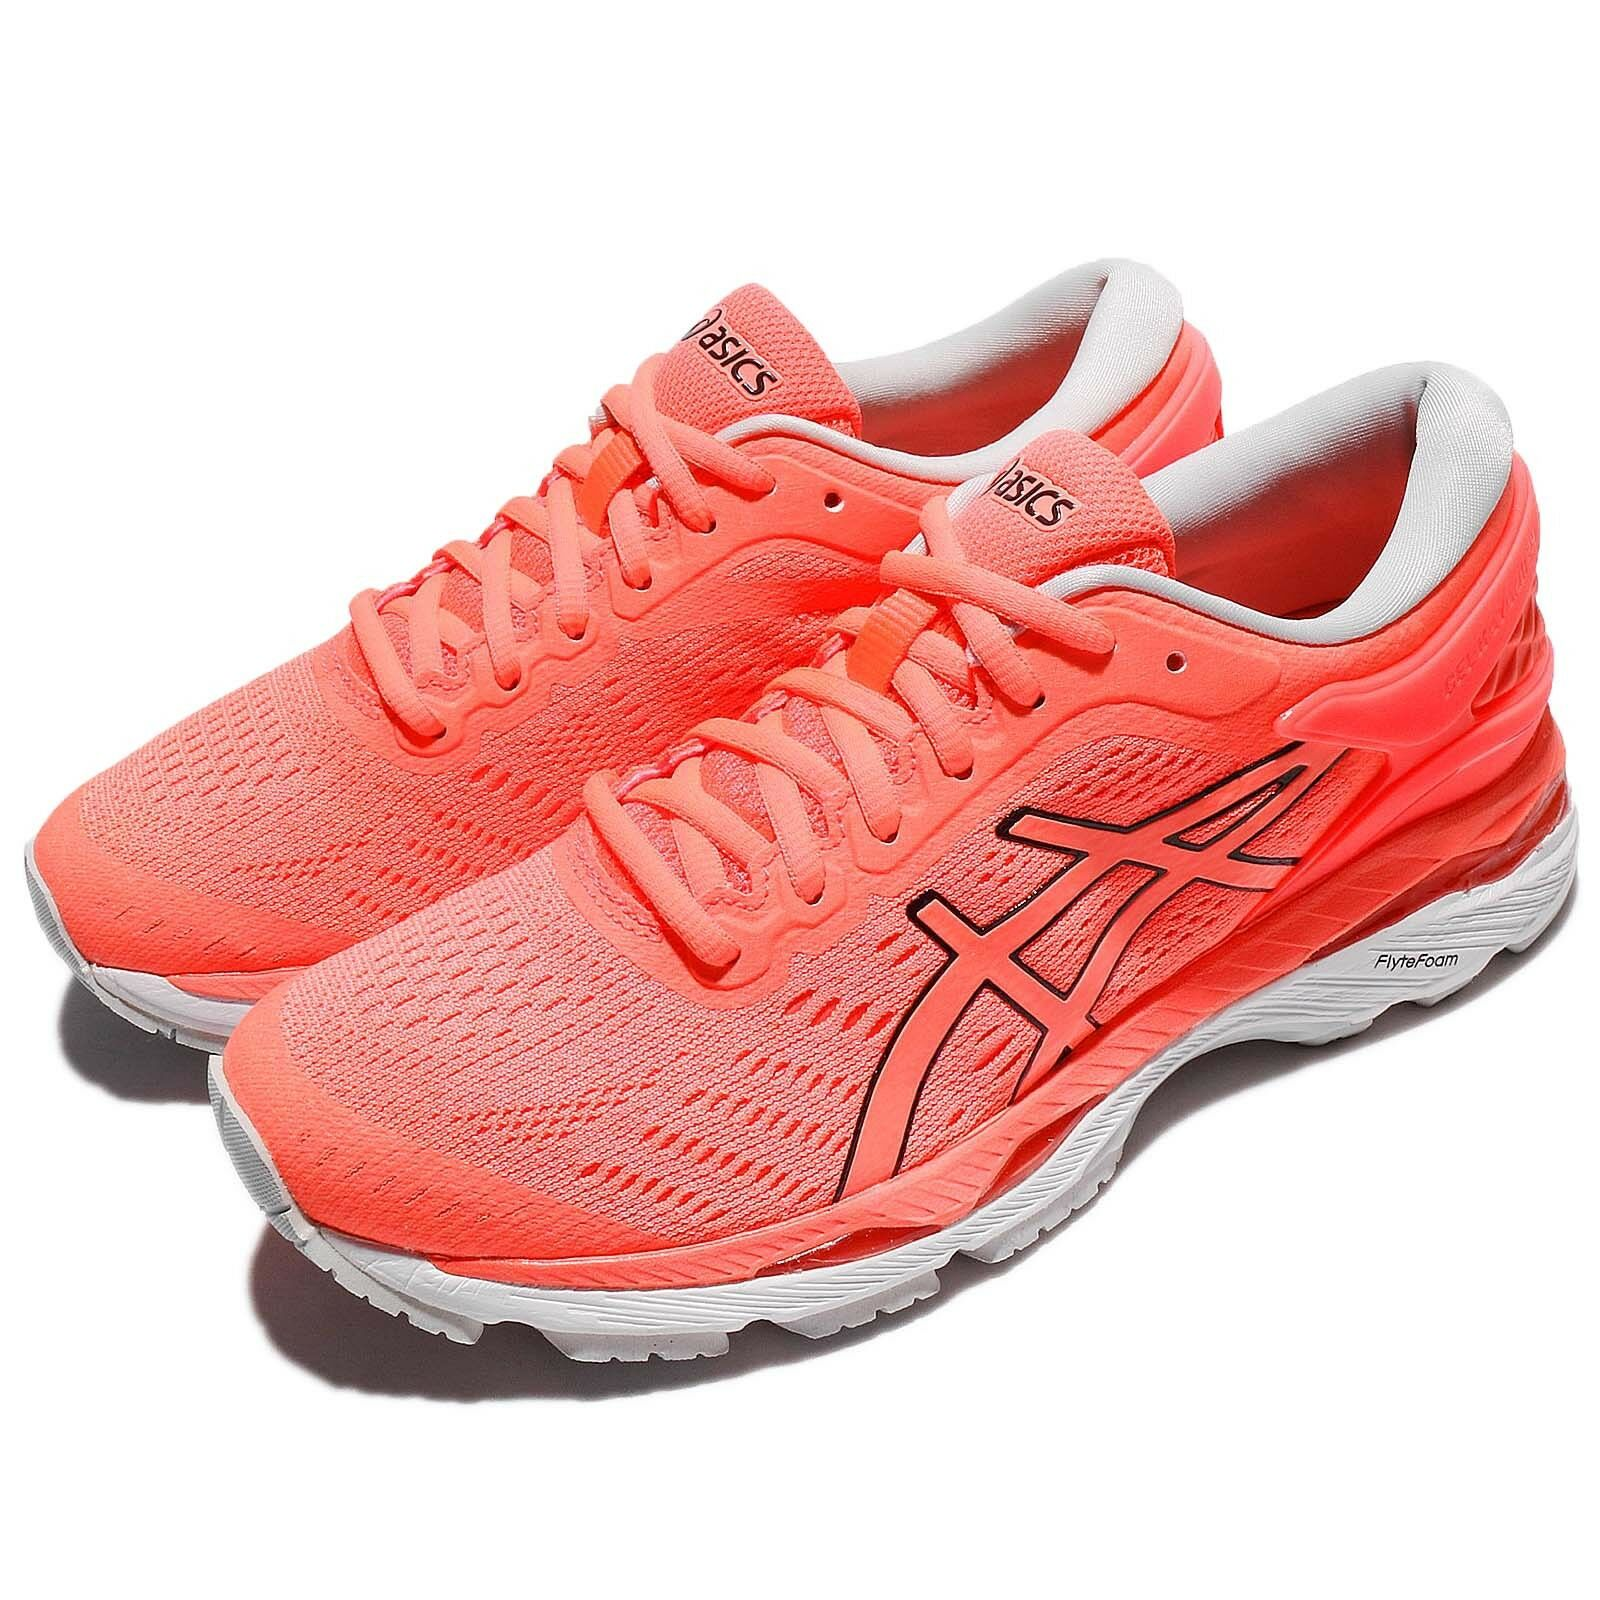 Asics Gel-Kayano 24 Flash Coral White Women Running  shoes Sneakers T799N-0690  affordable